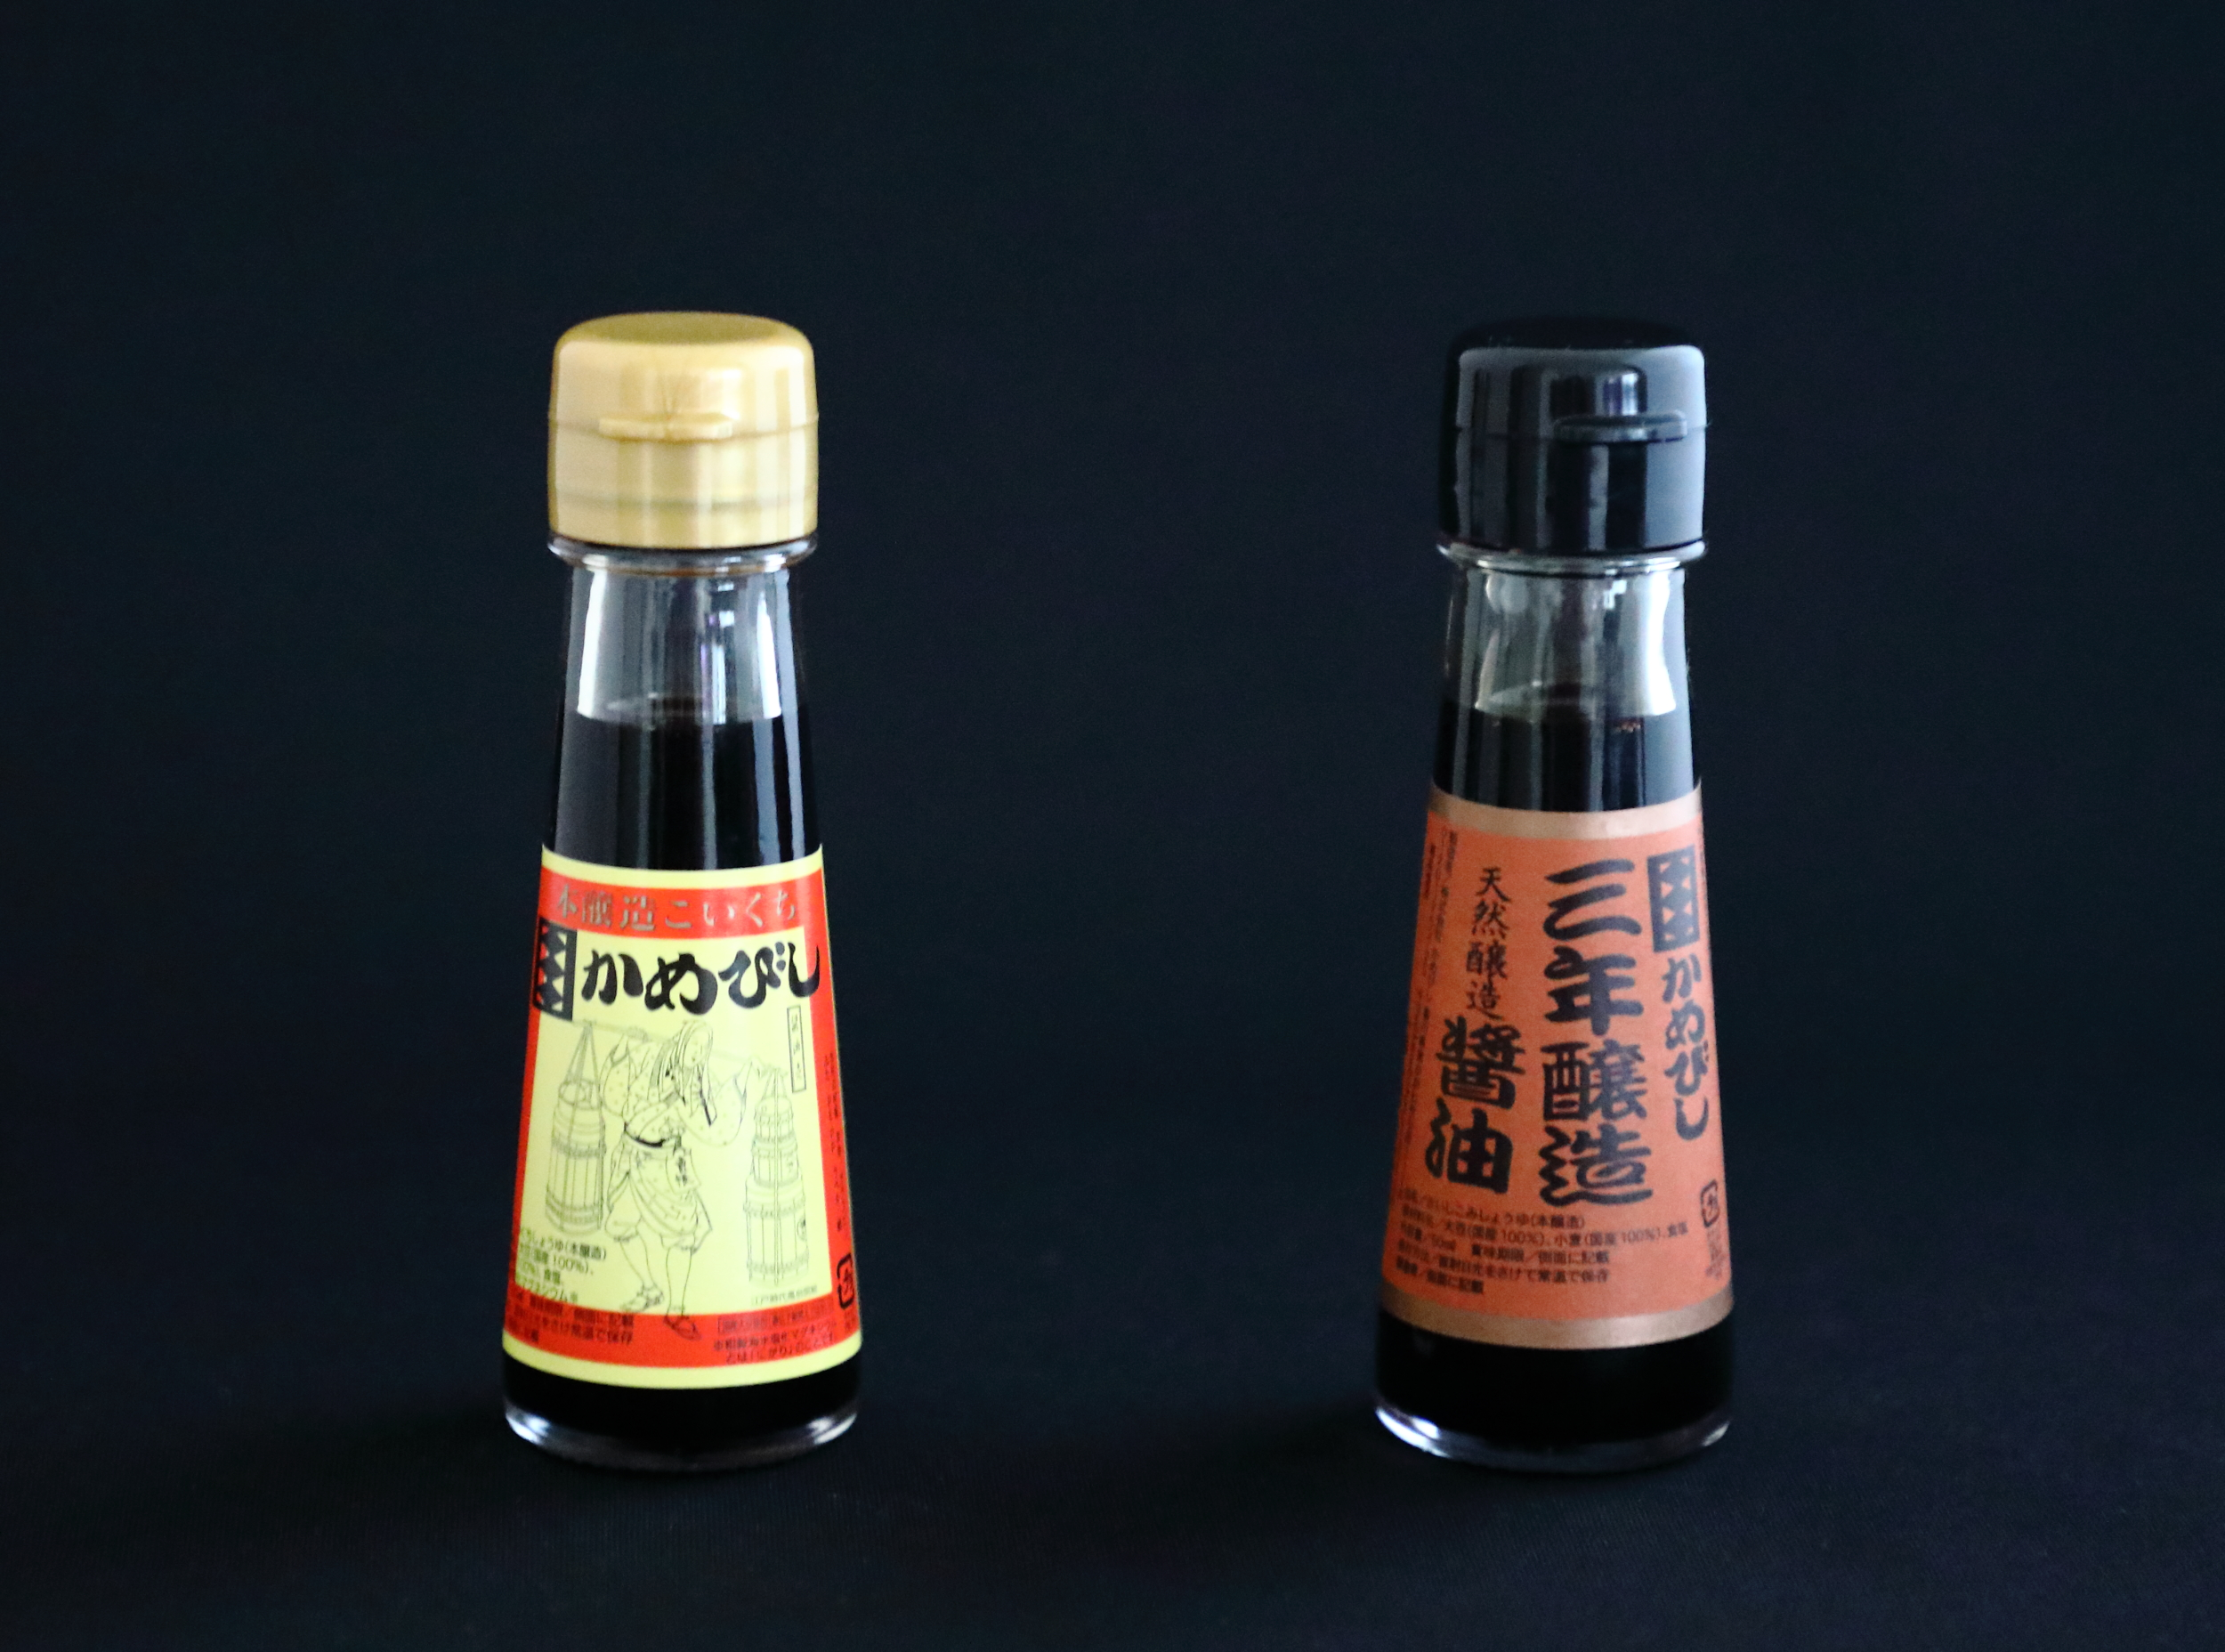 On the left is a bottle of Kamebishiya's two-year  koikuchi  soy sauce and on the right its three-year double-brewed, re-fermented soy sauce.